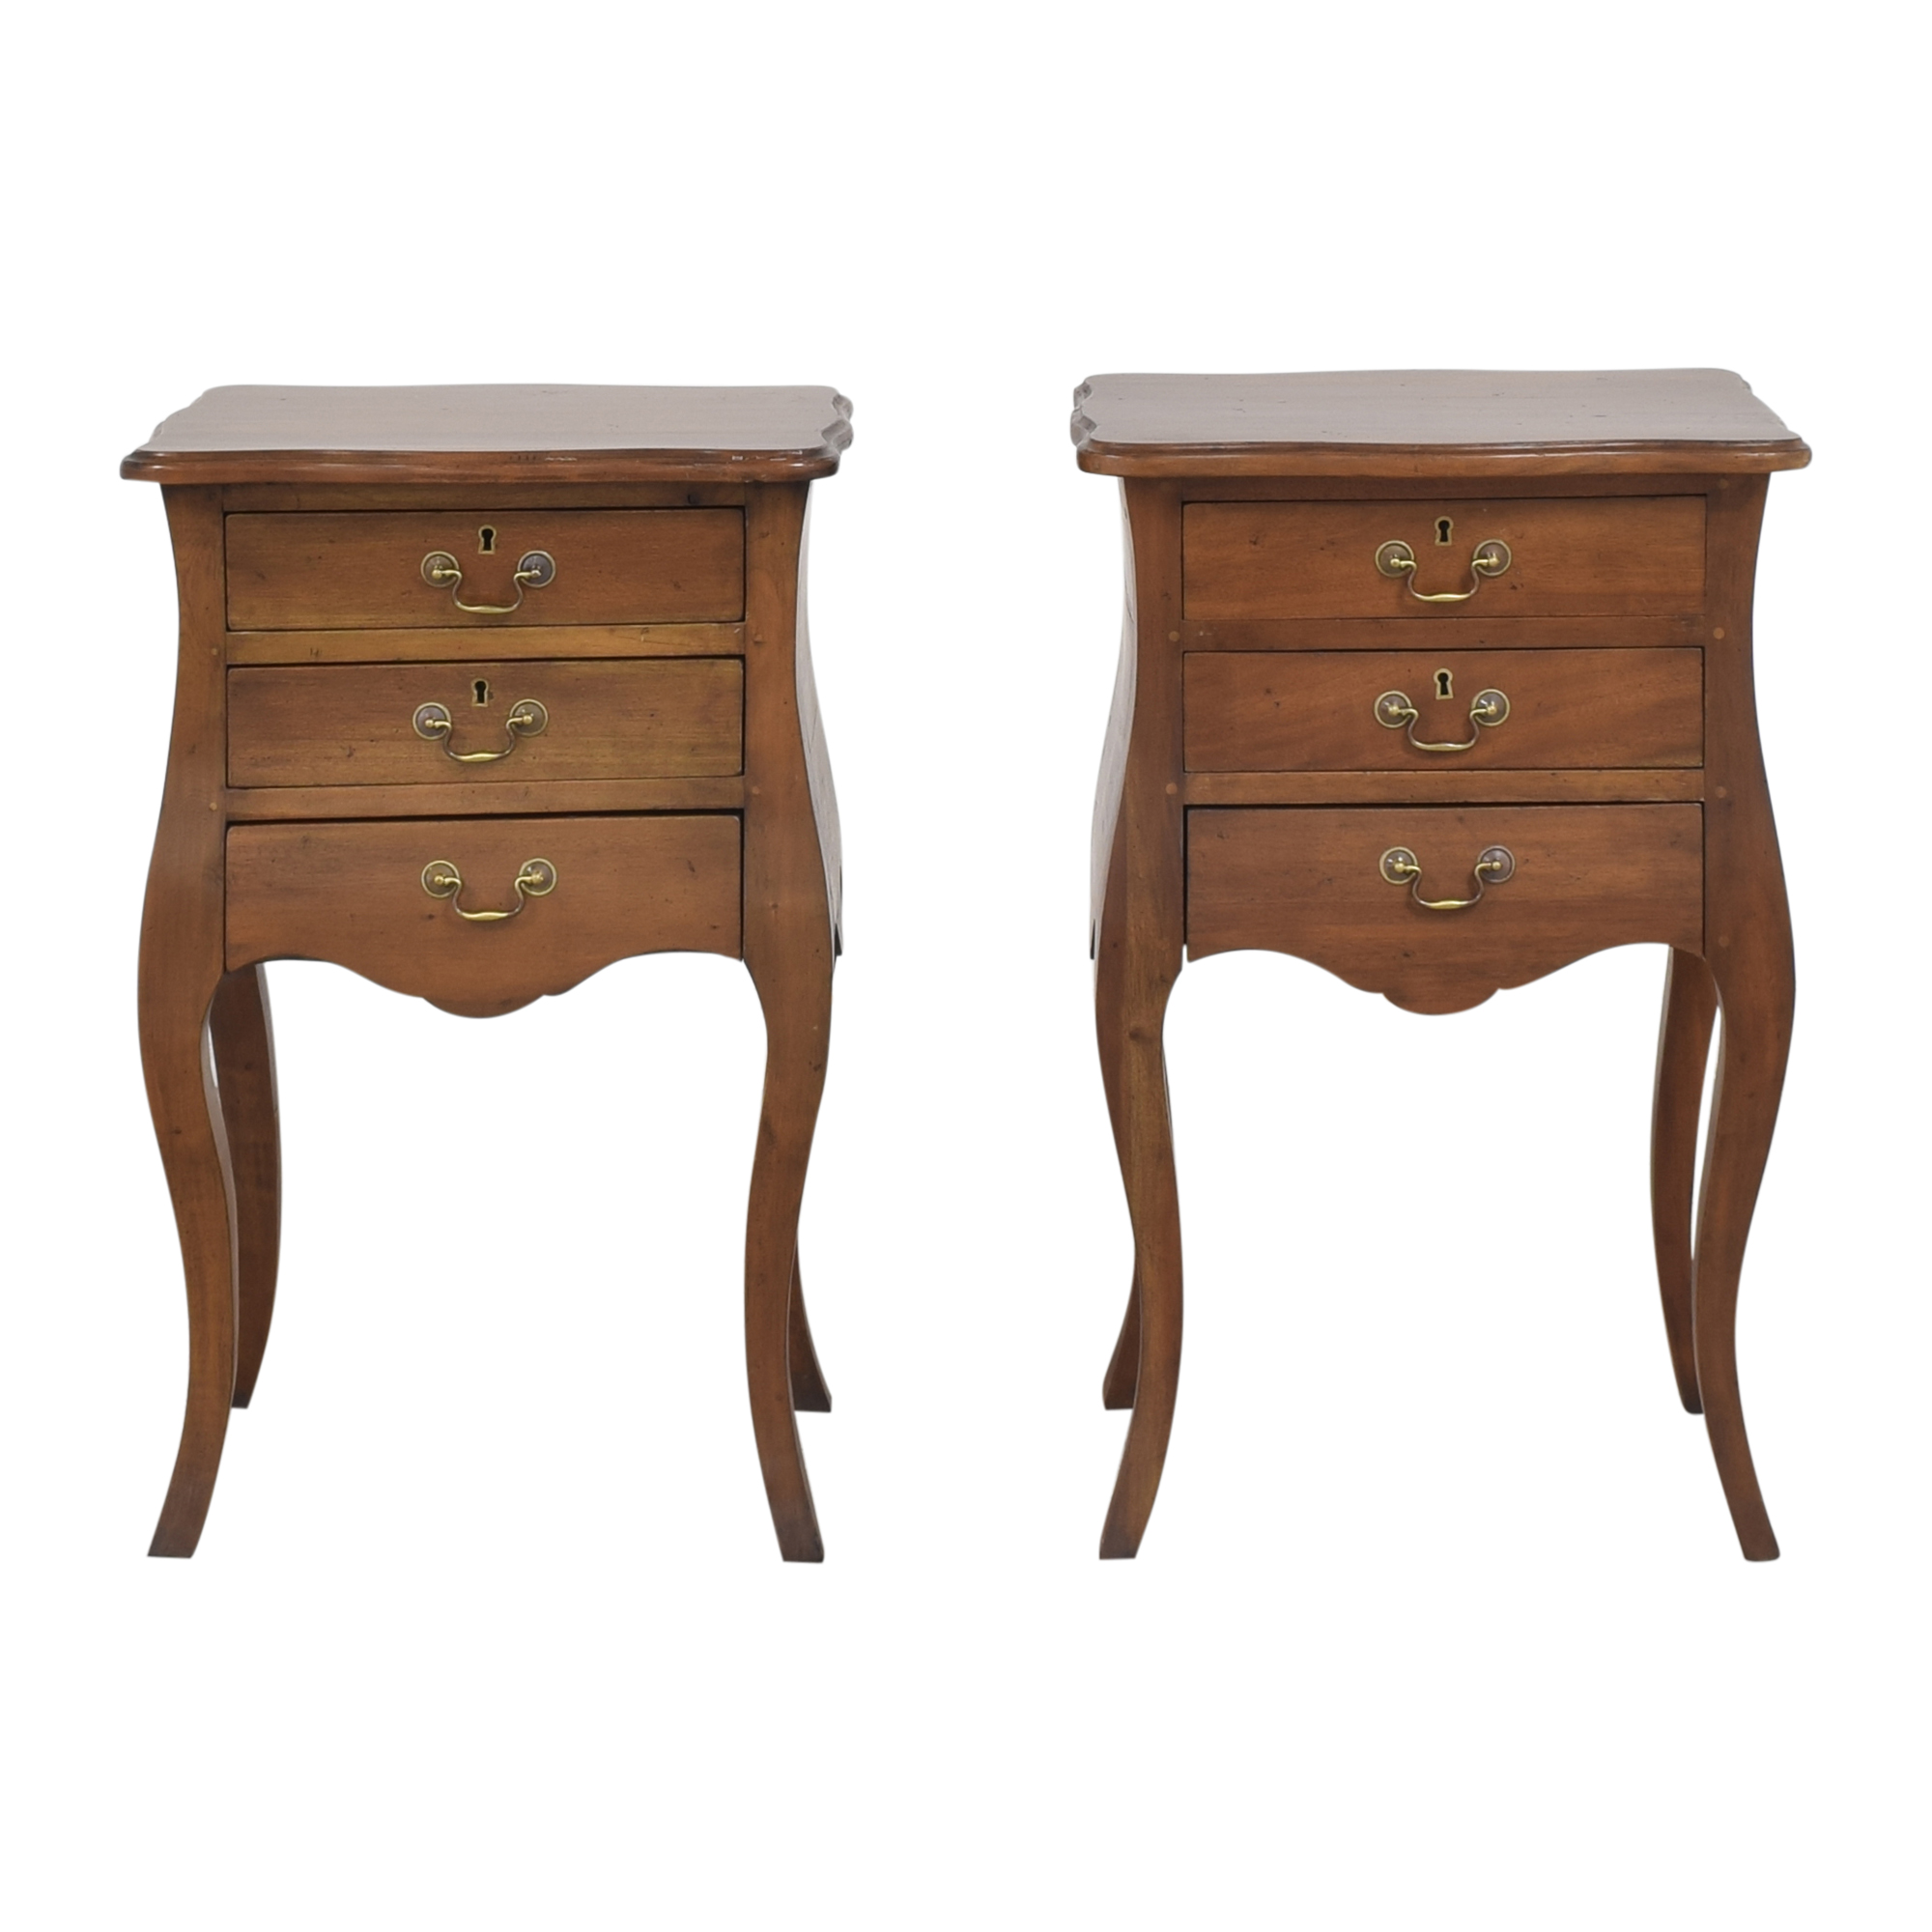 Marie Albert Marie Albert Louis XIV-Style Nightstands ct